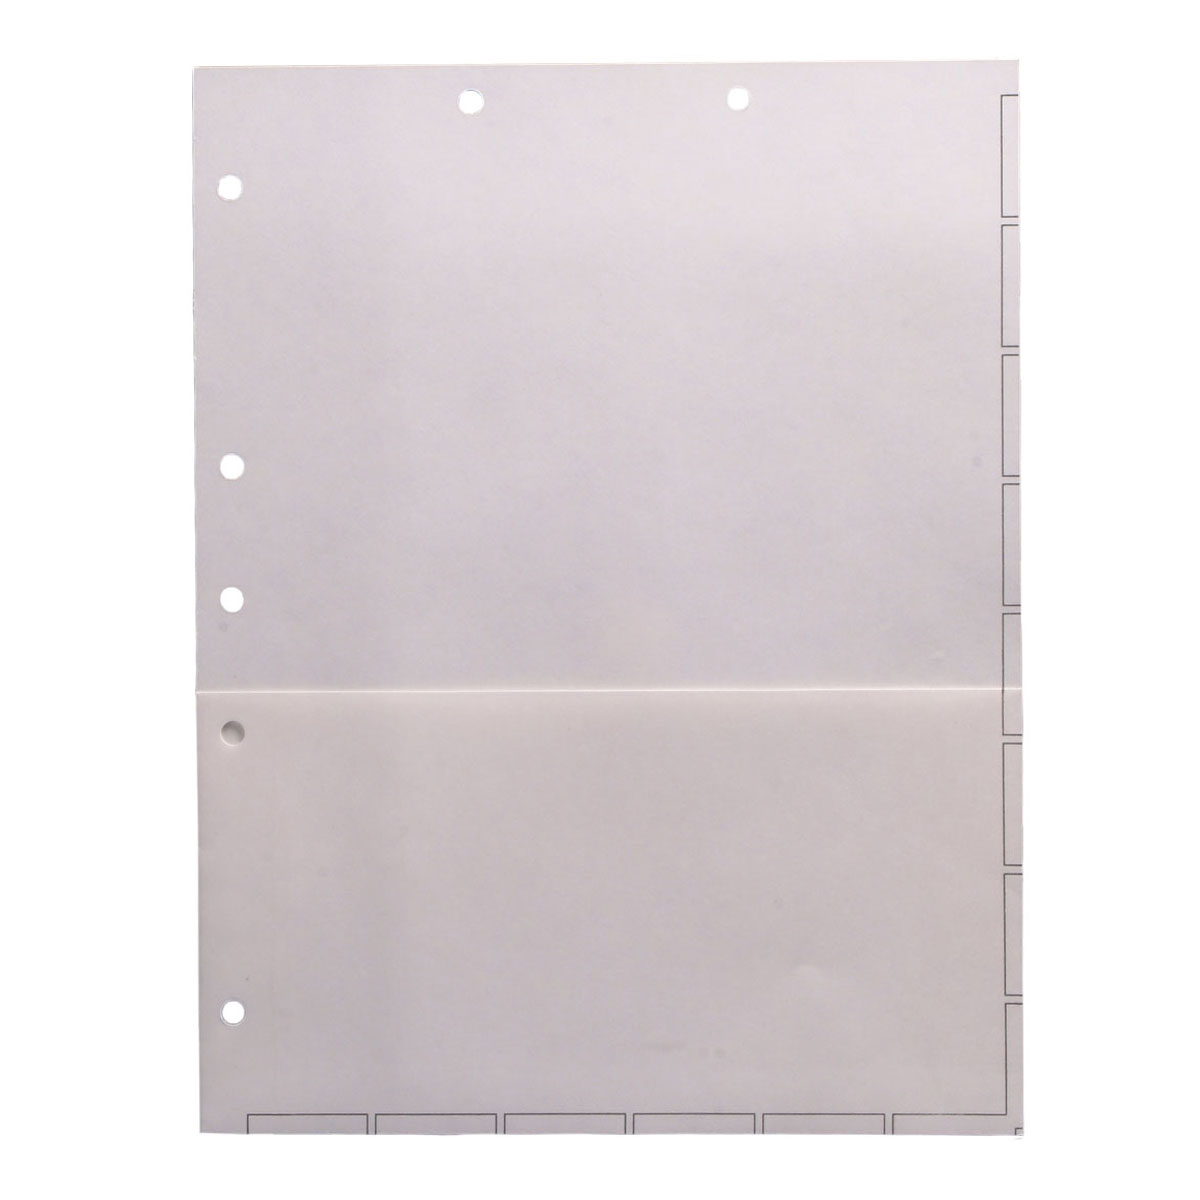 S-9085 - Chart Divider Sheets for Stick-On Tabs, Letter Size, White with 1/2 Pocket (Box of 50)